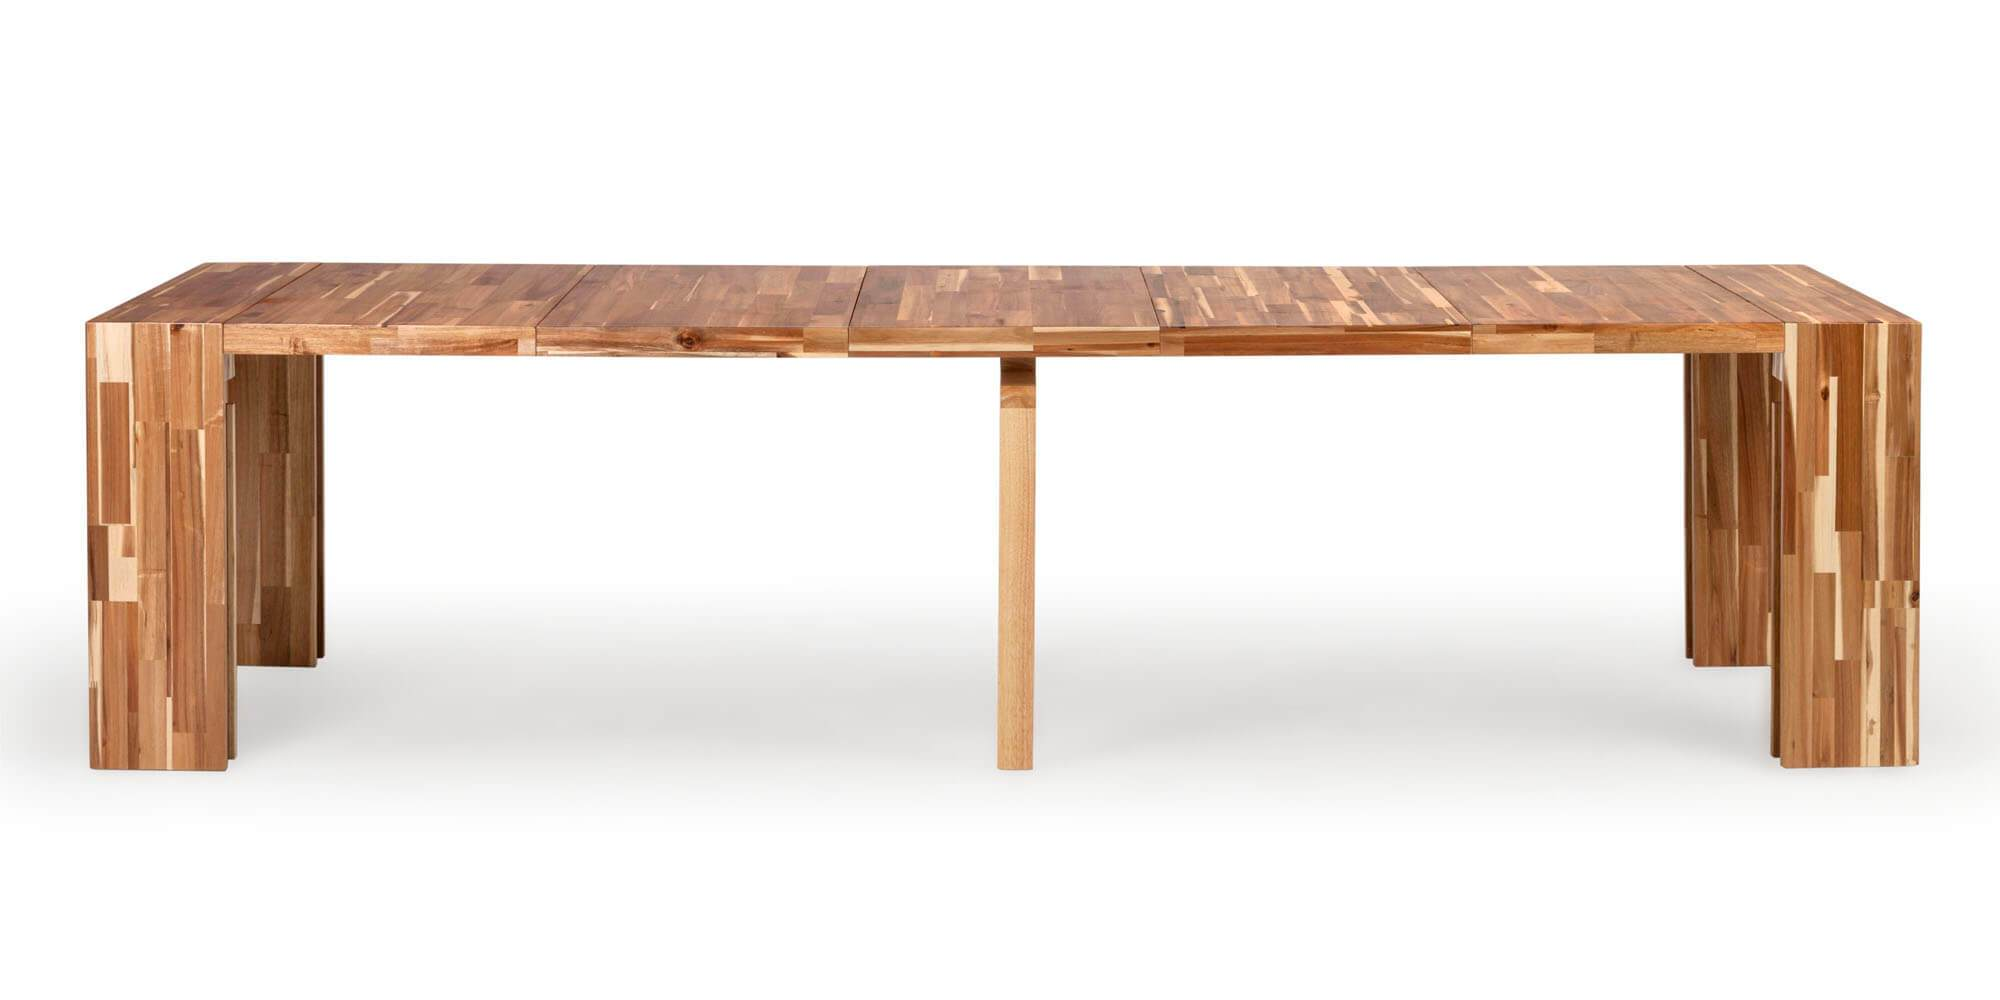 Le Transformer Table 2.0 + Acacia naturel